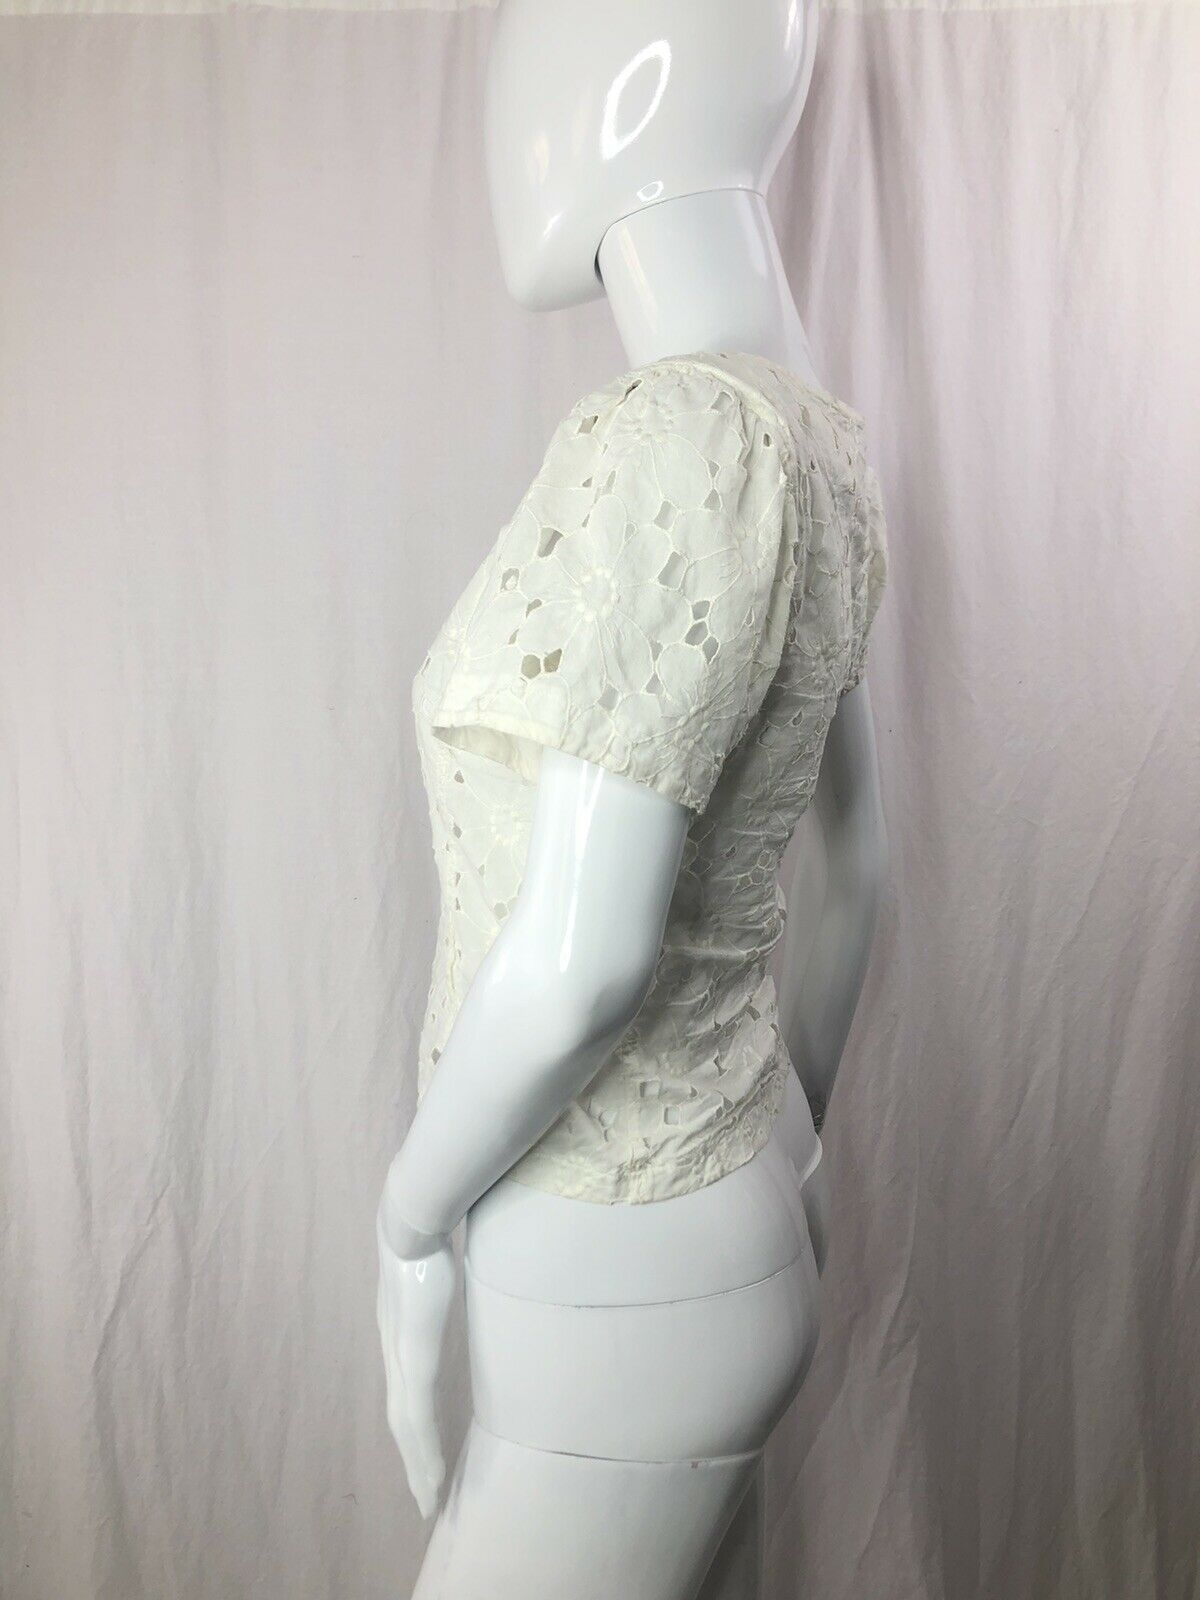 Vintage Kenzo 70s  Sheer Floral Lace Top XS - image 3